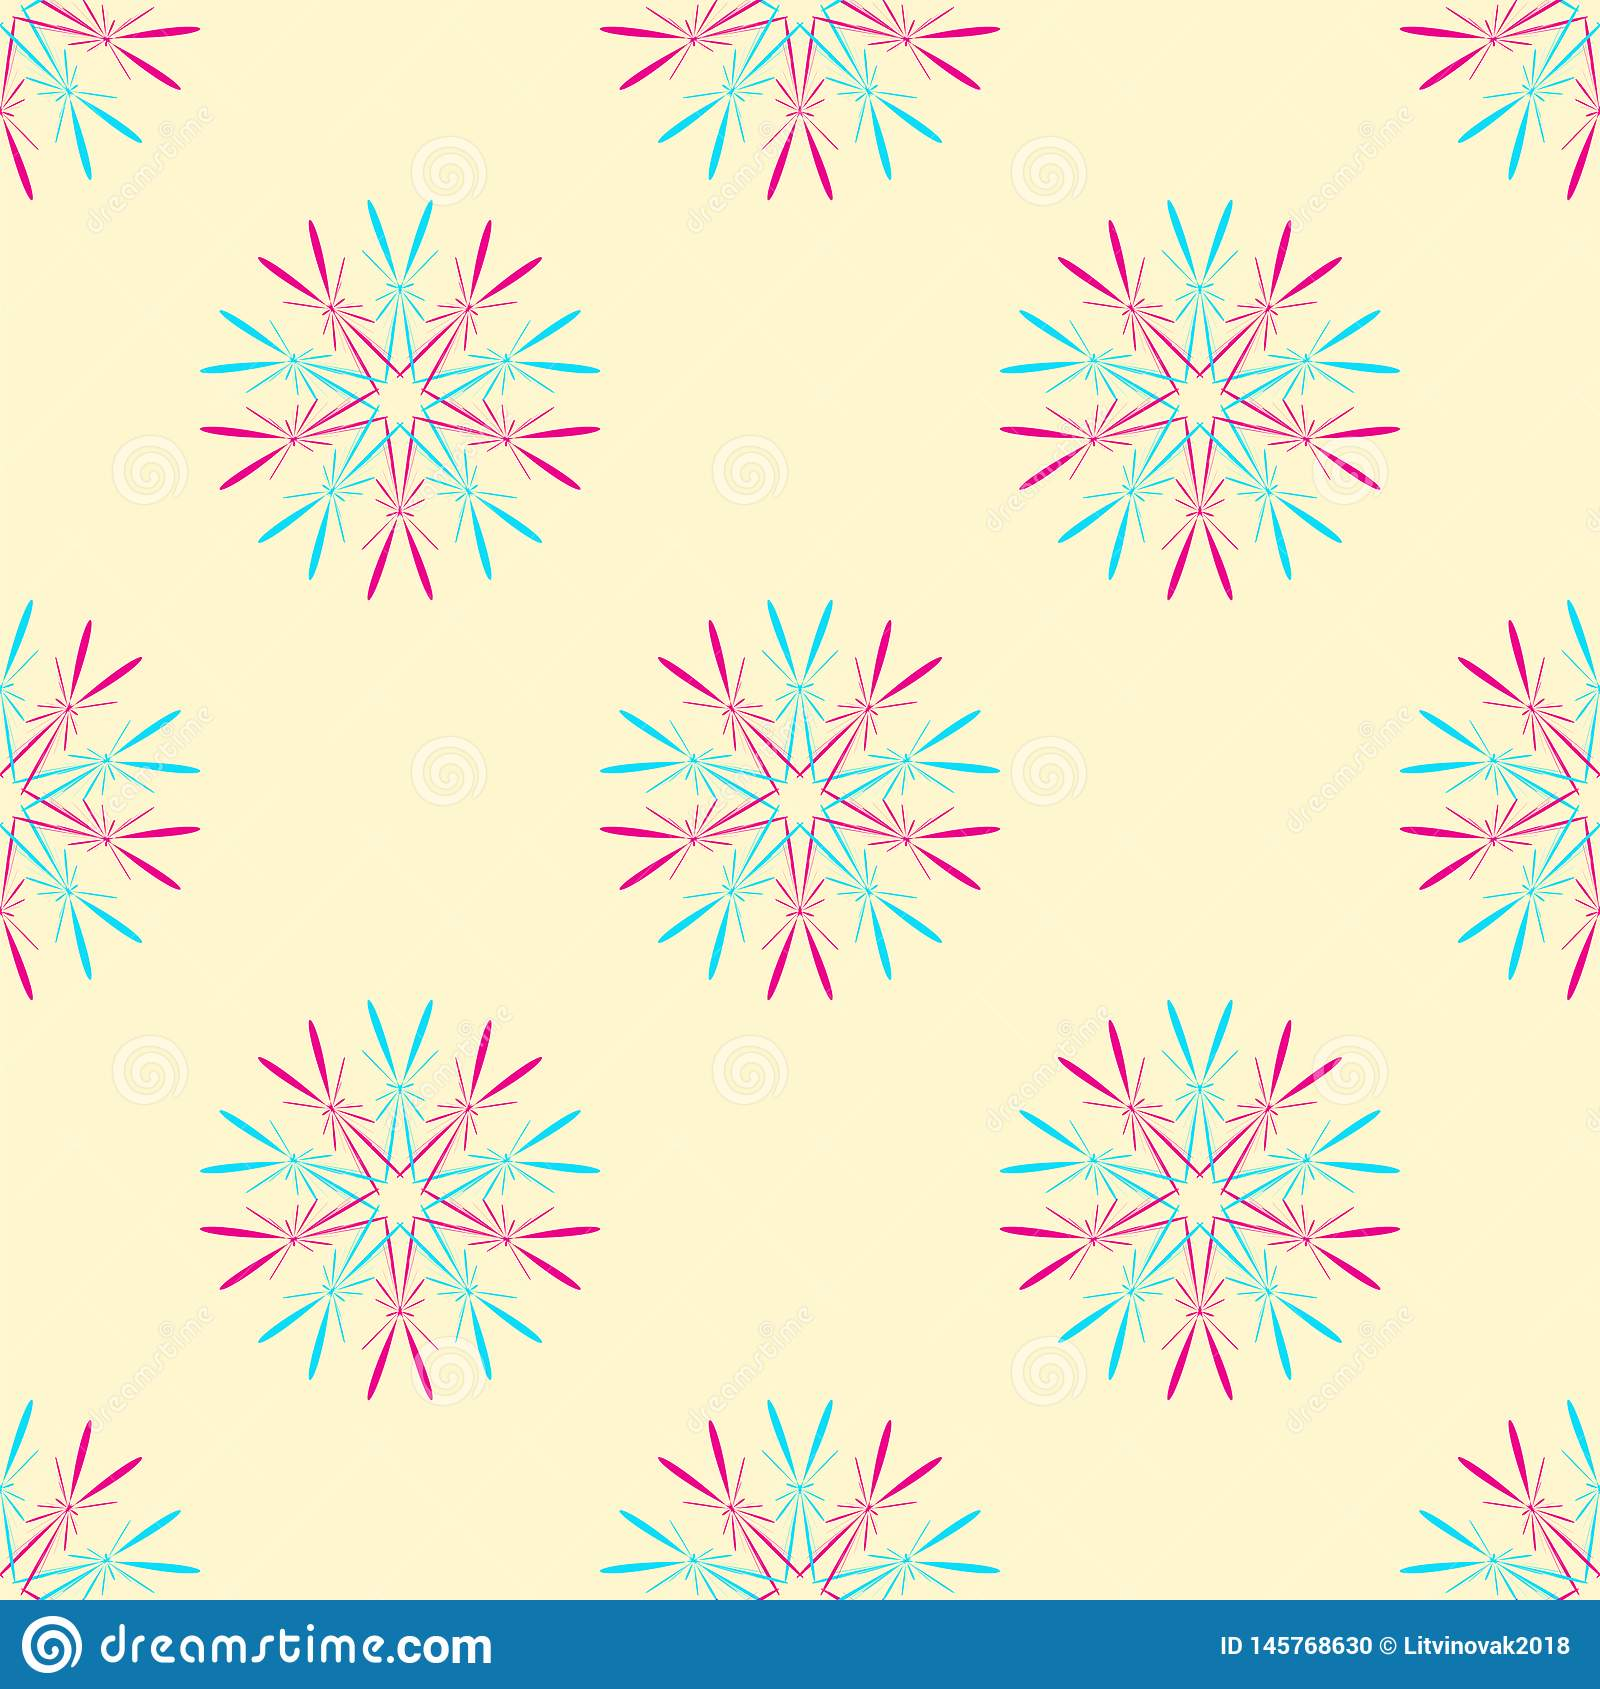 Abstract seamless pattern with stars. Colorful vector illustration